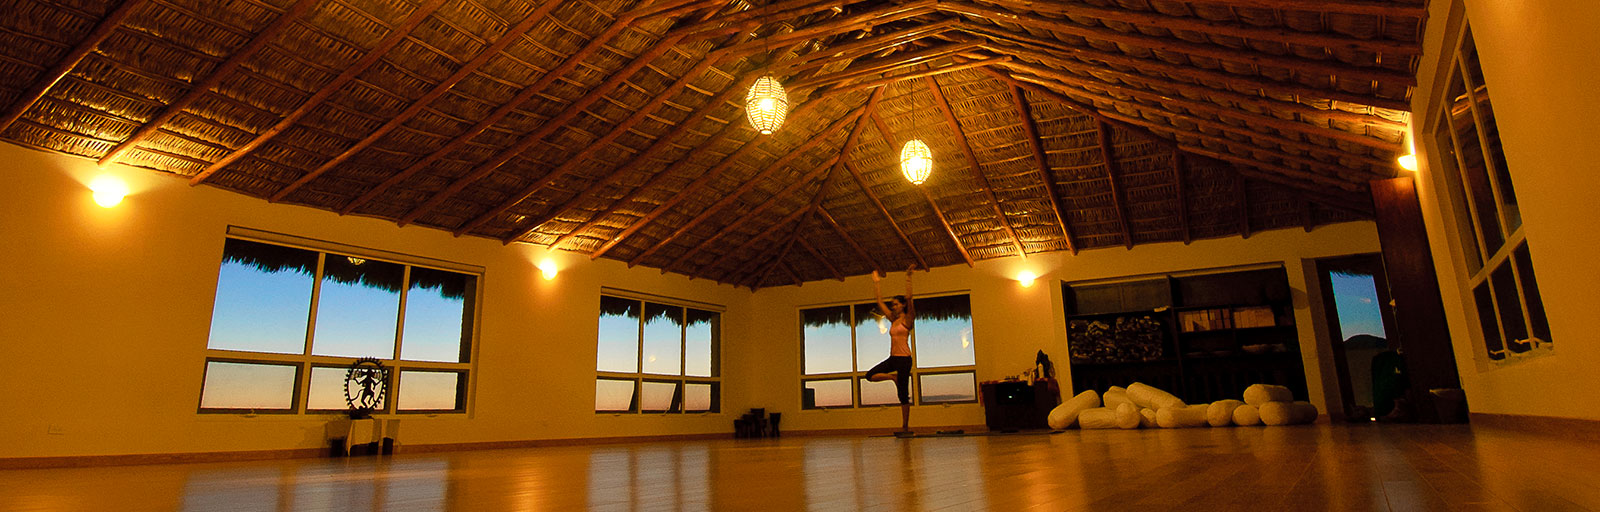 Mexico Yoga Retreat Studio Evening In The